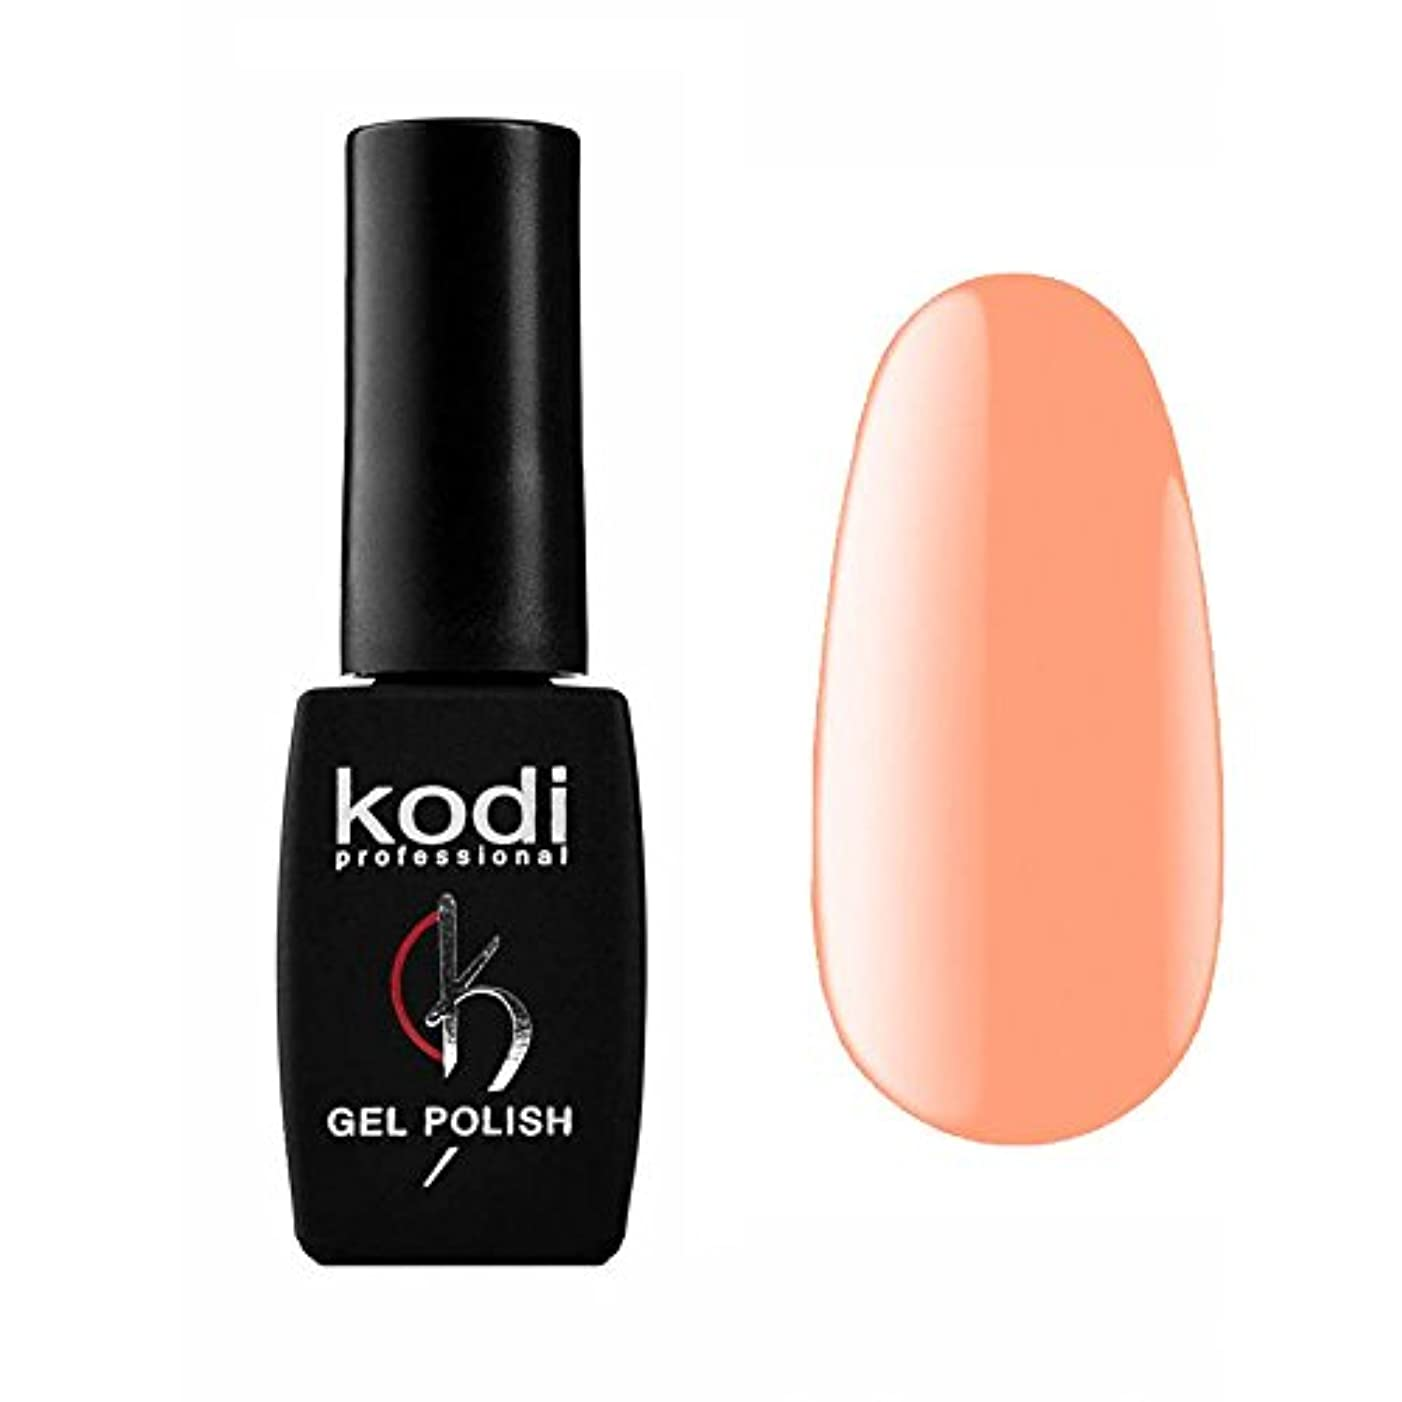 Kodi Professional New Collection BR BRIGT #100 Color Gel Nail Polish 12ml 0.42 Fl Oz LED UV Genuine Soak Off